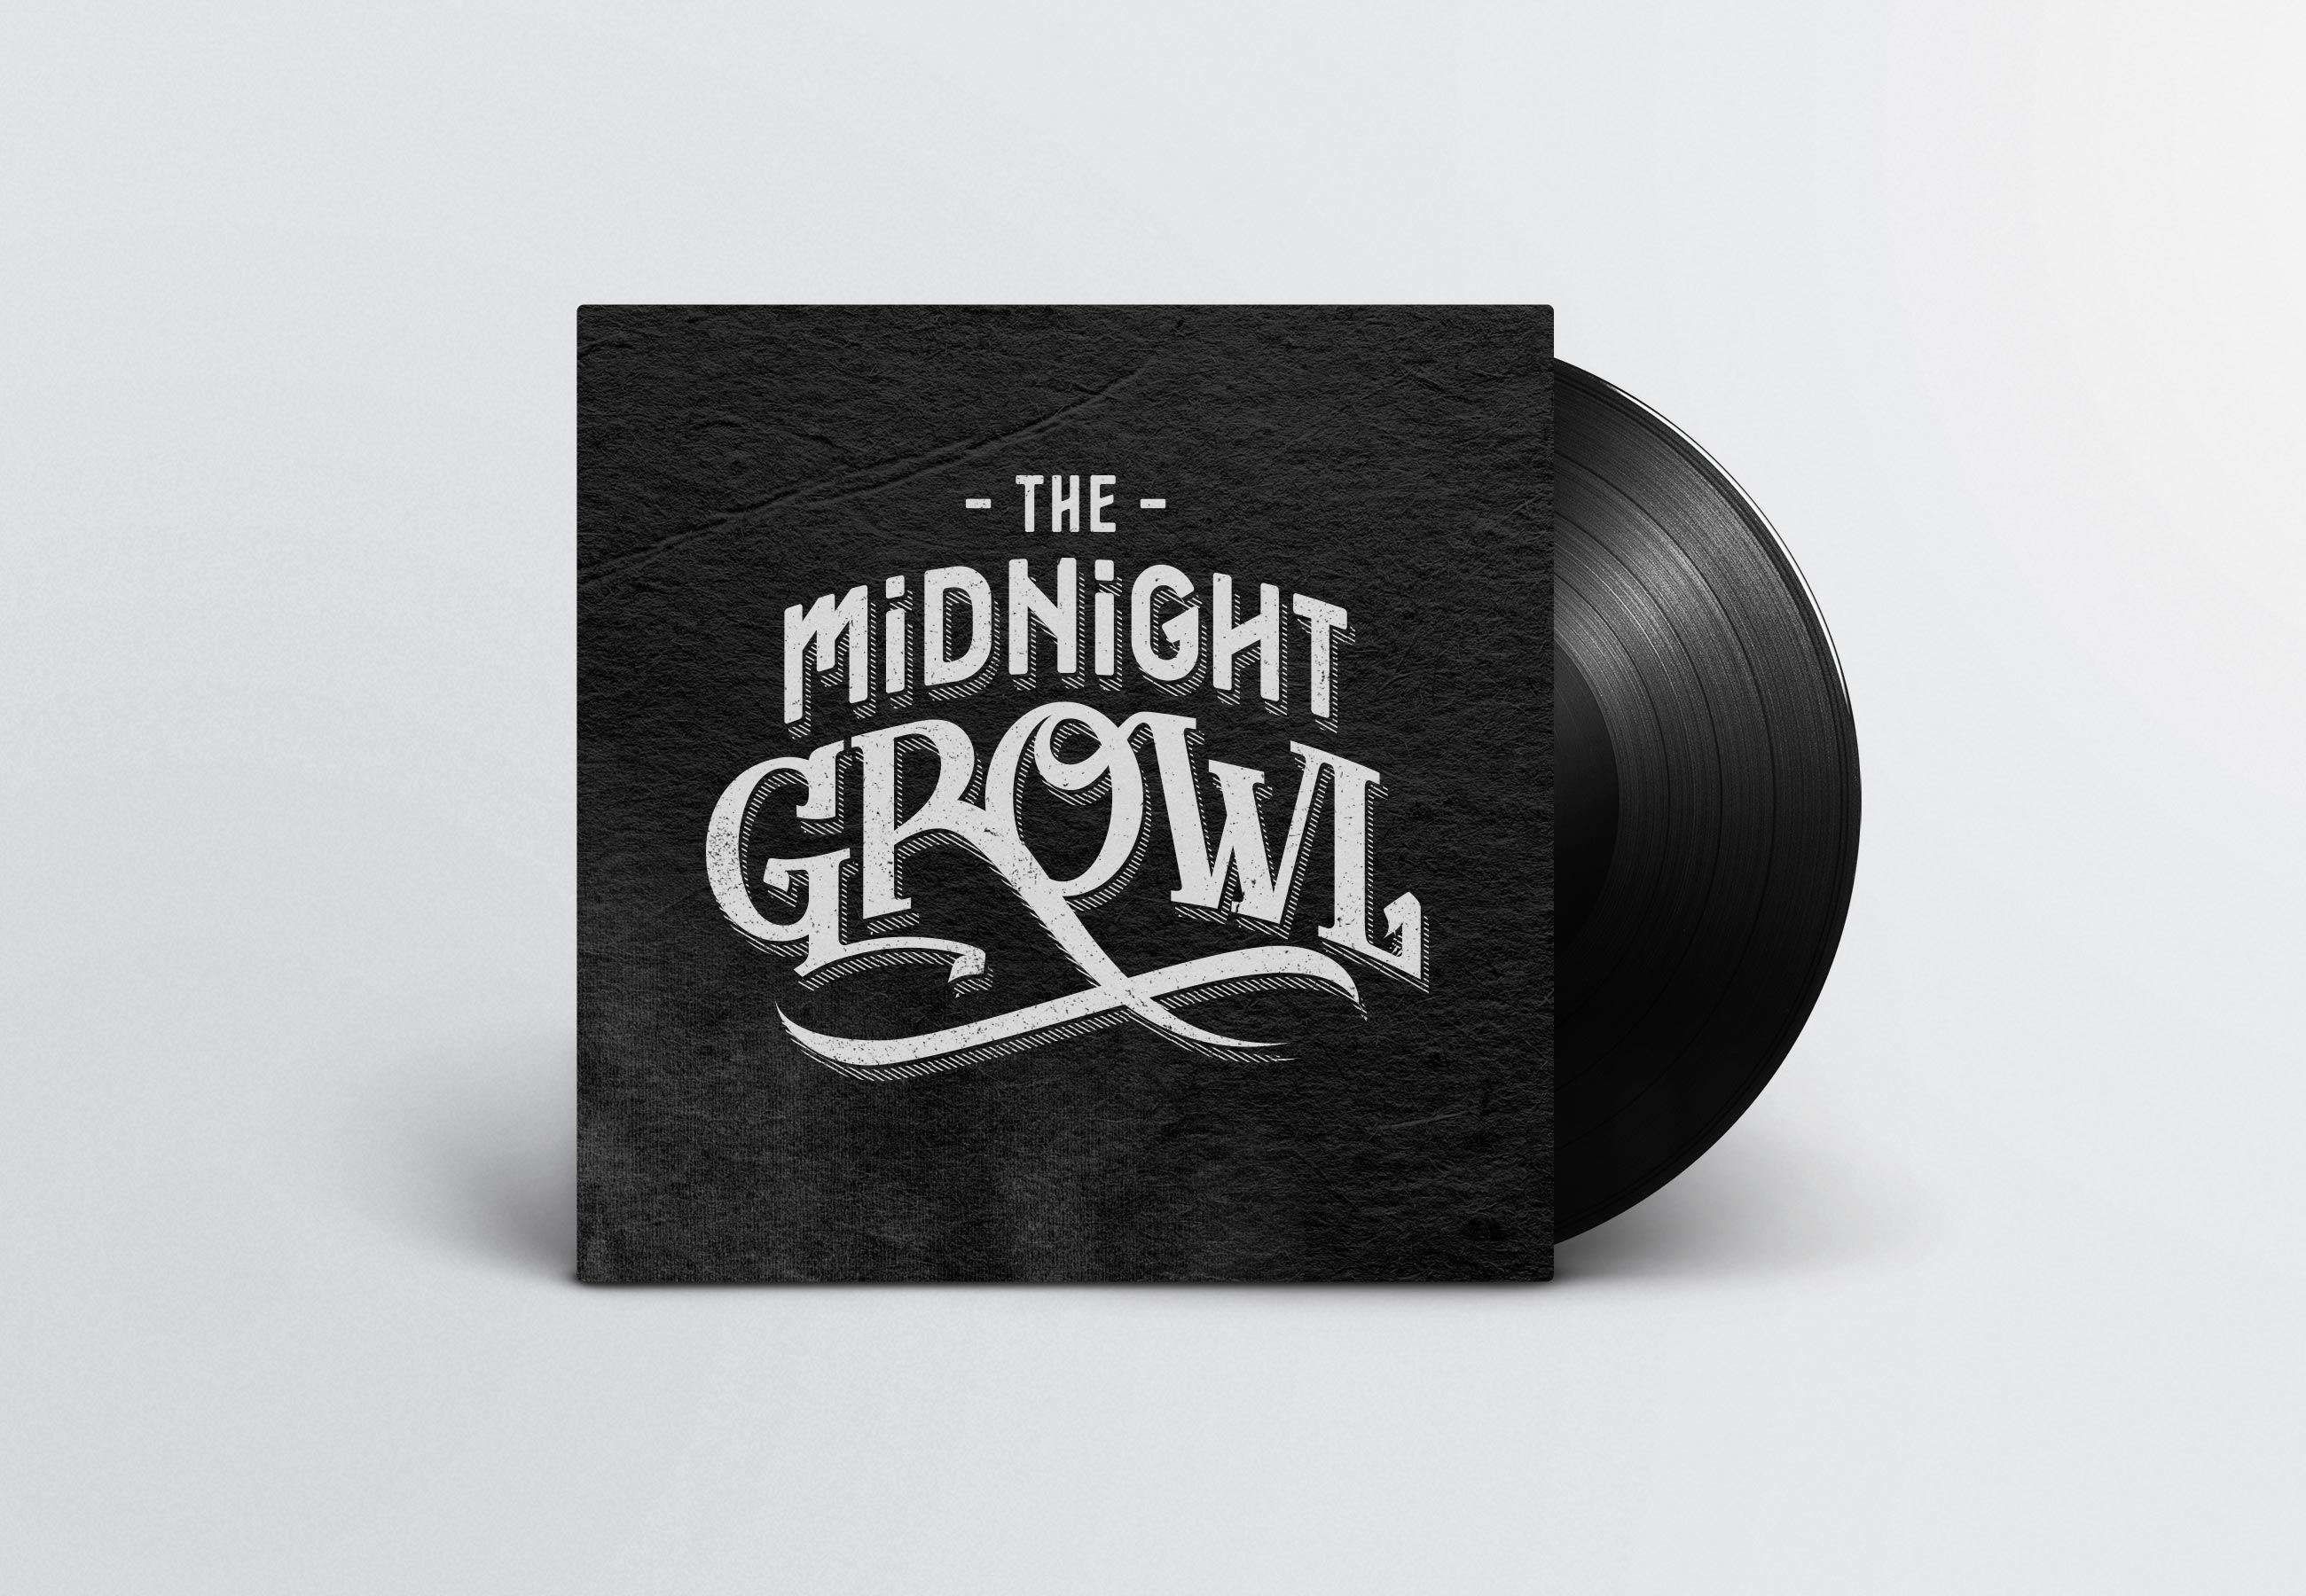 midnight_growl_02_parallele_graphique